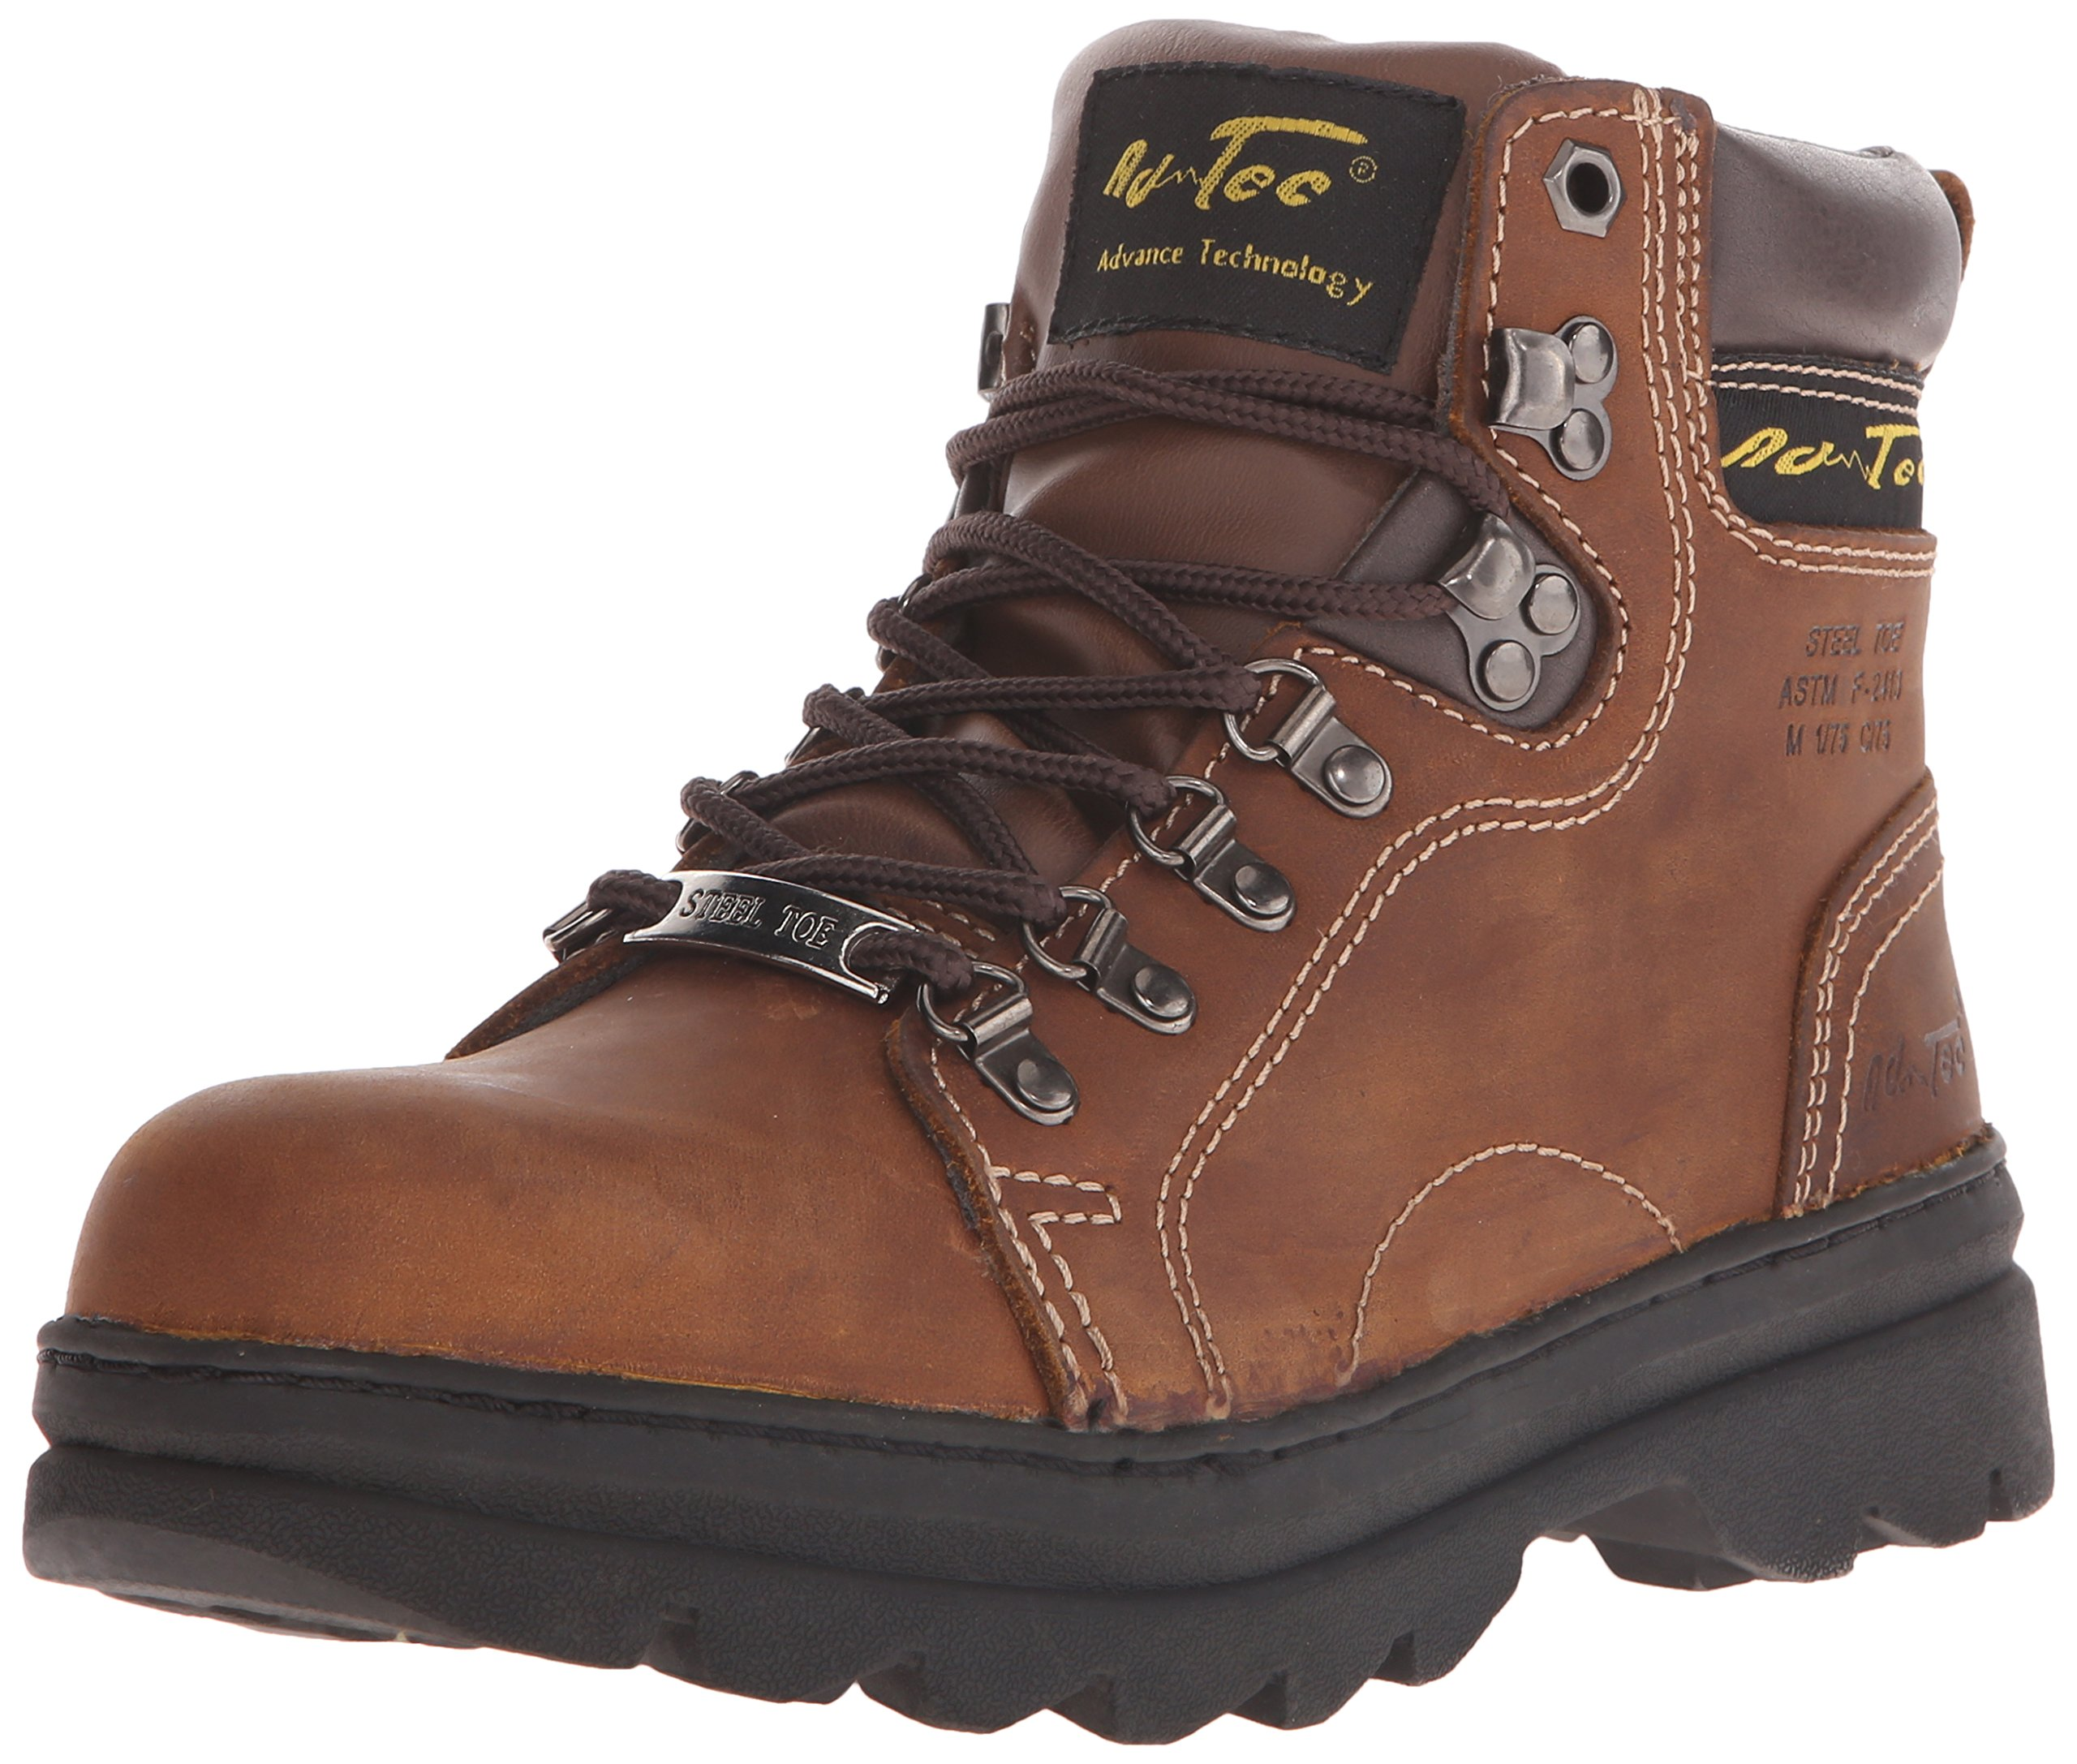 Adtec Women's 6'' Steel Toe Work Work Boot, Brown, 10 M US